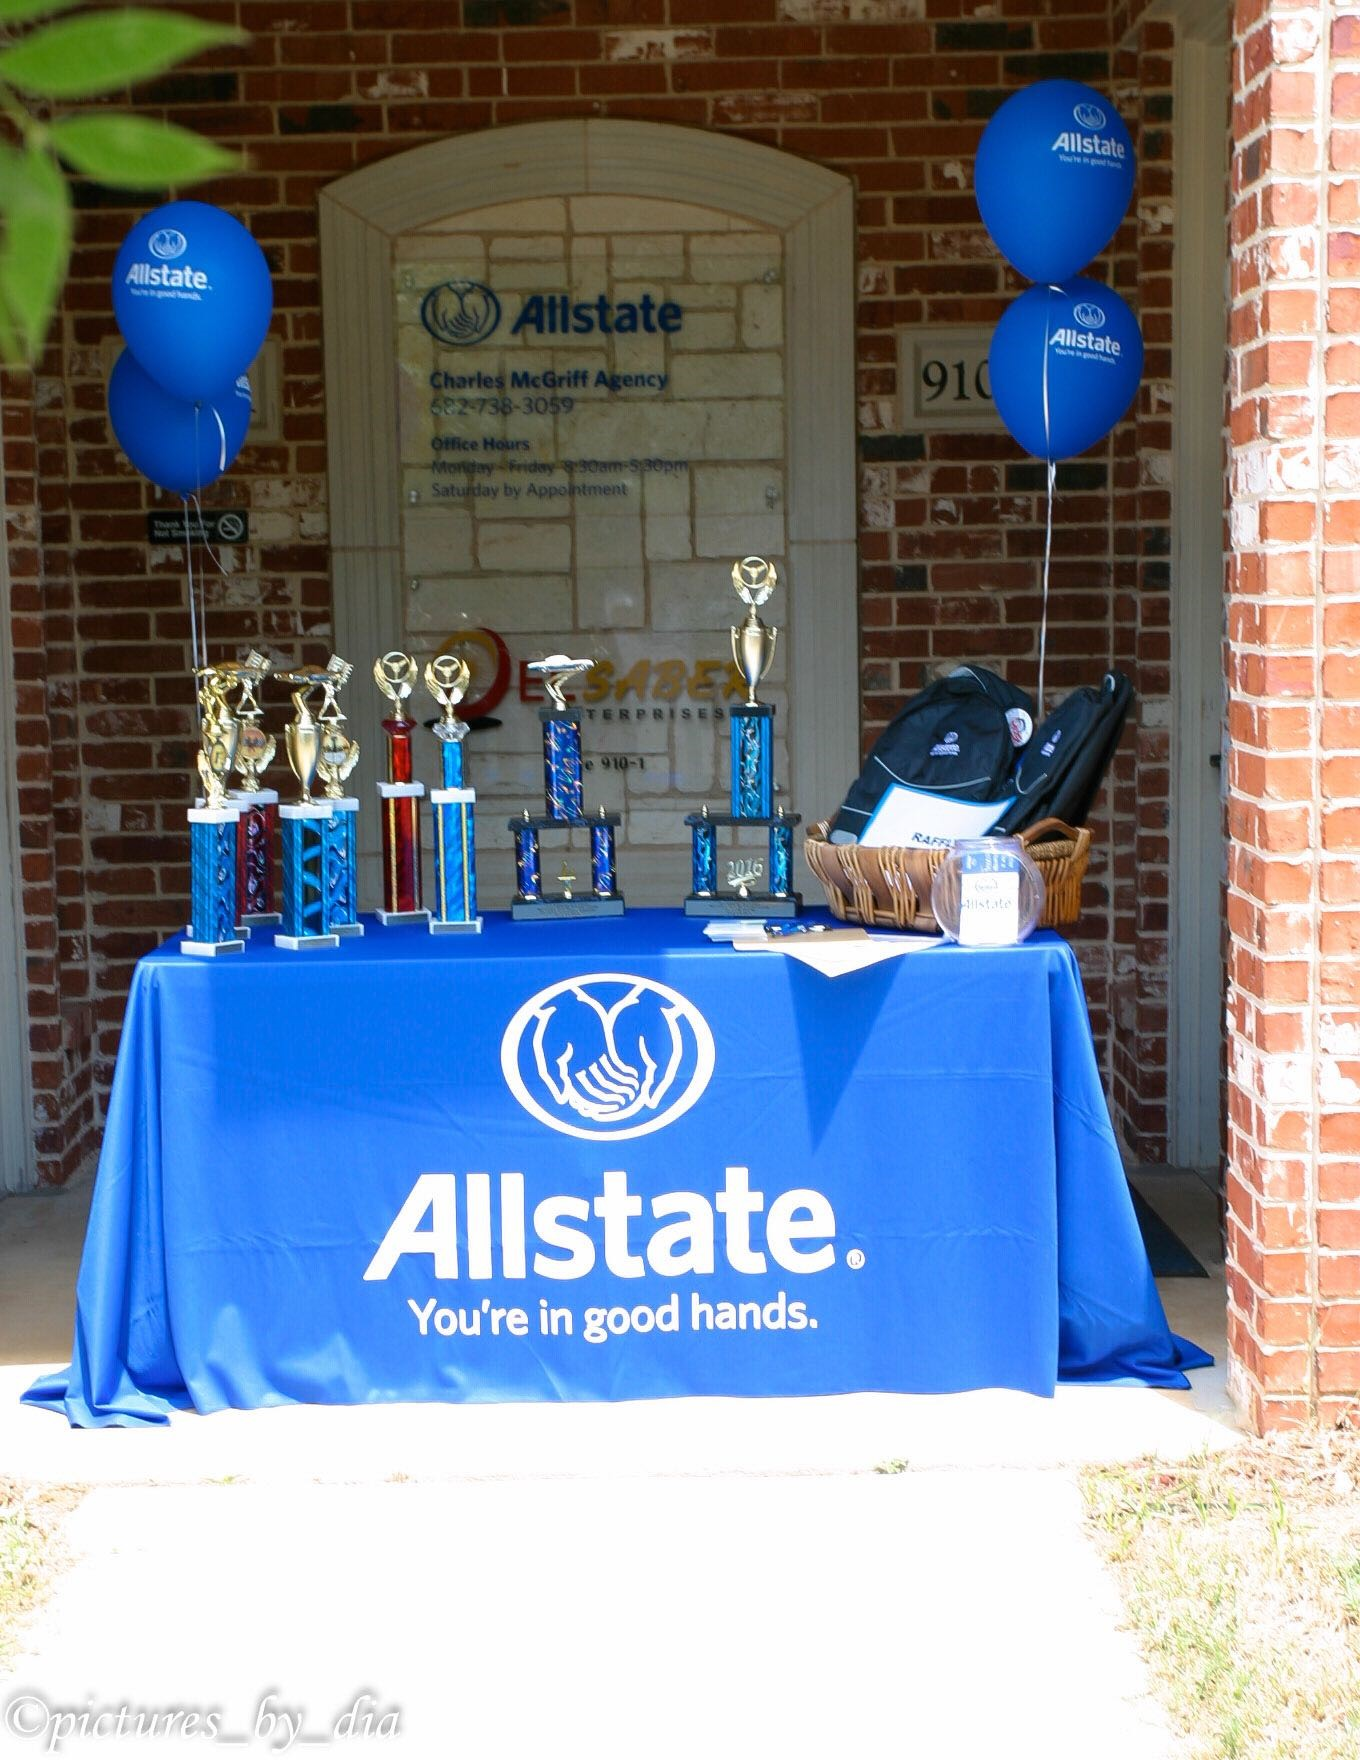 Allstate Insurance Agent: Charles McGriff image 2